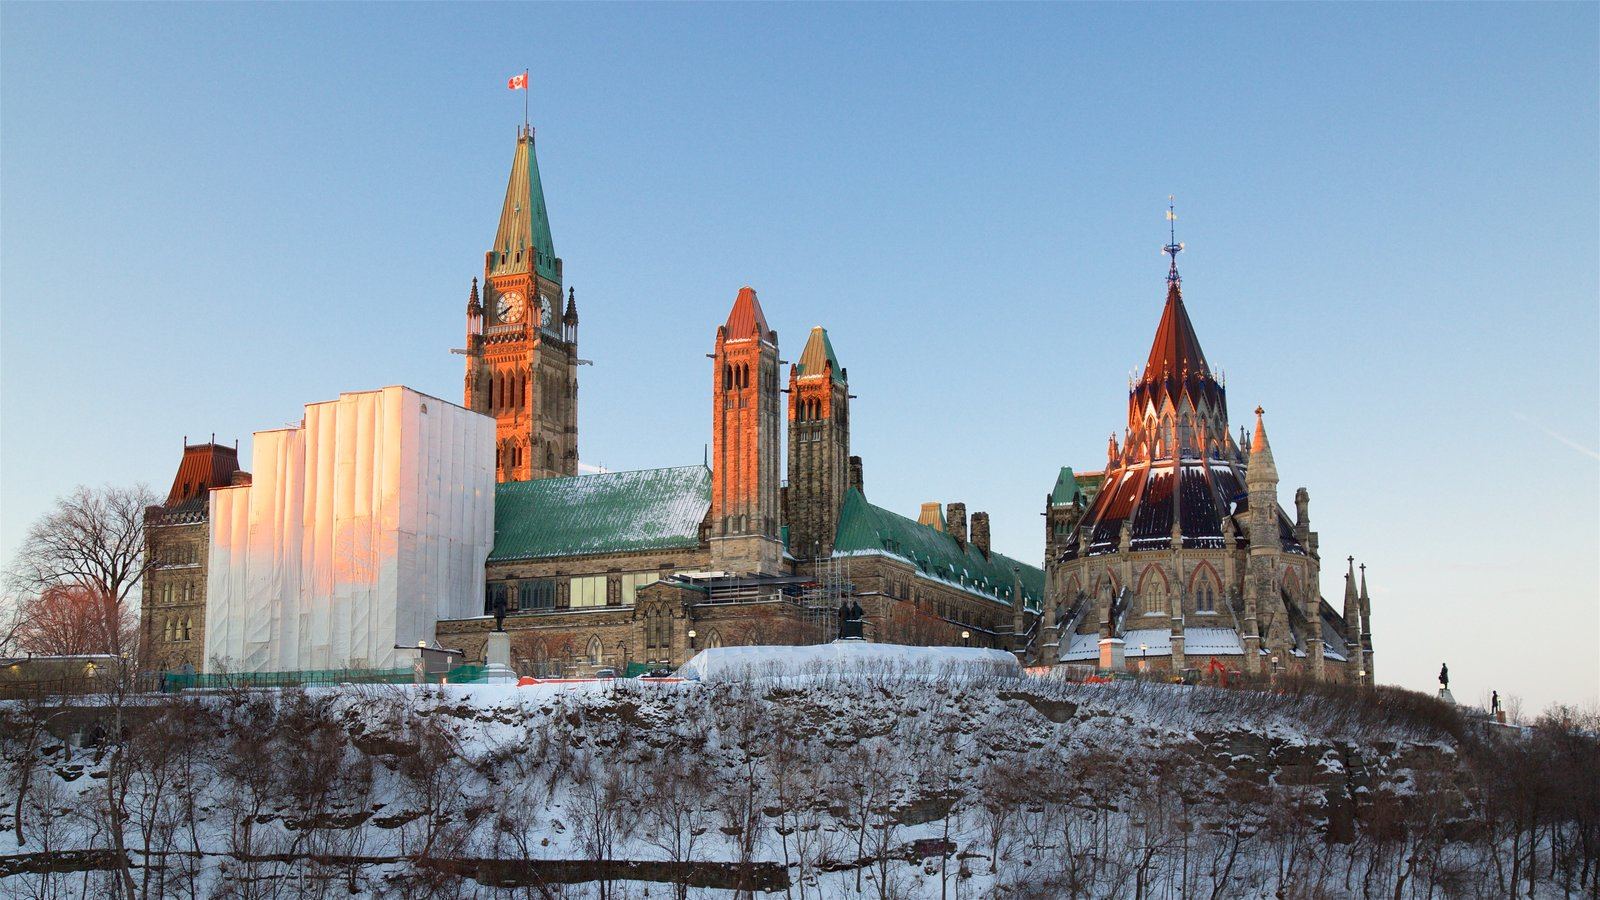 Parliament Hill showing snow and a castle